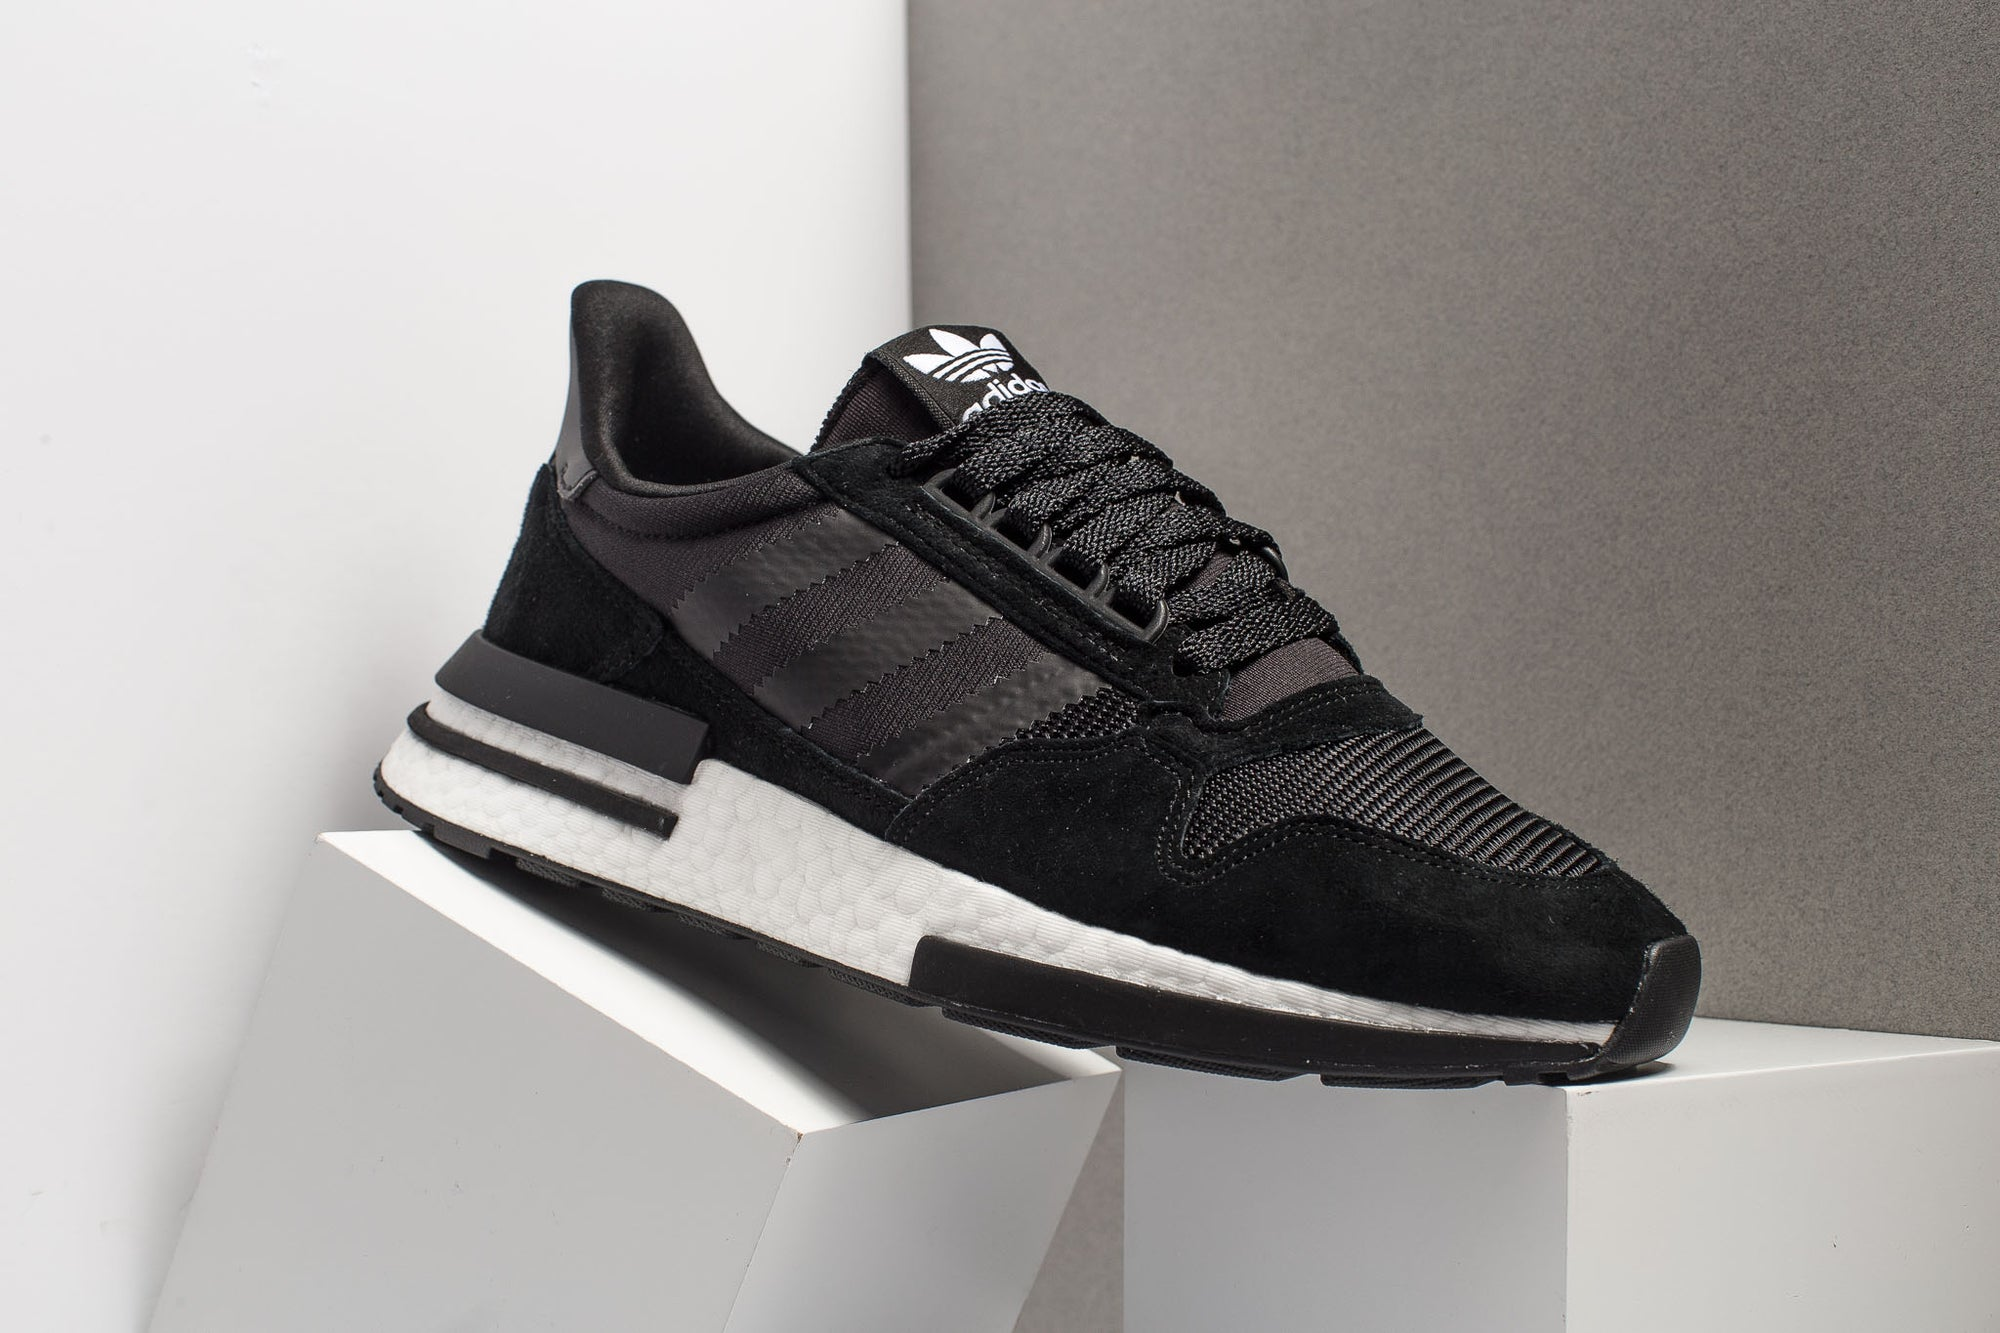 premium selection 212fb 9c113 ADIDAS ZX 500 RM - Oneness Boutique